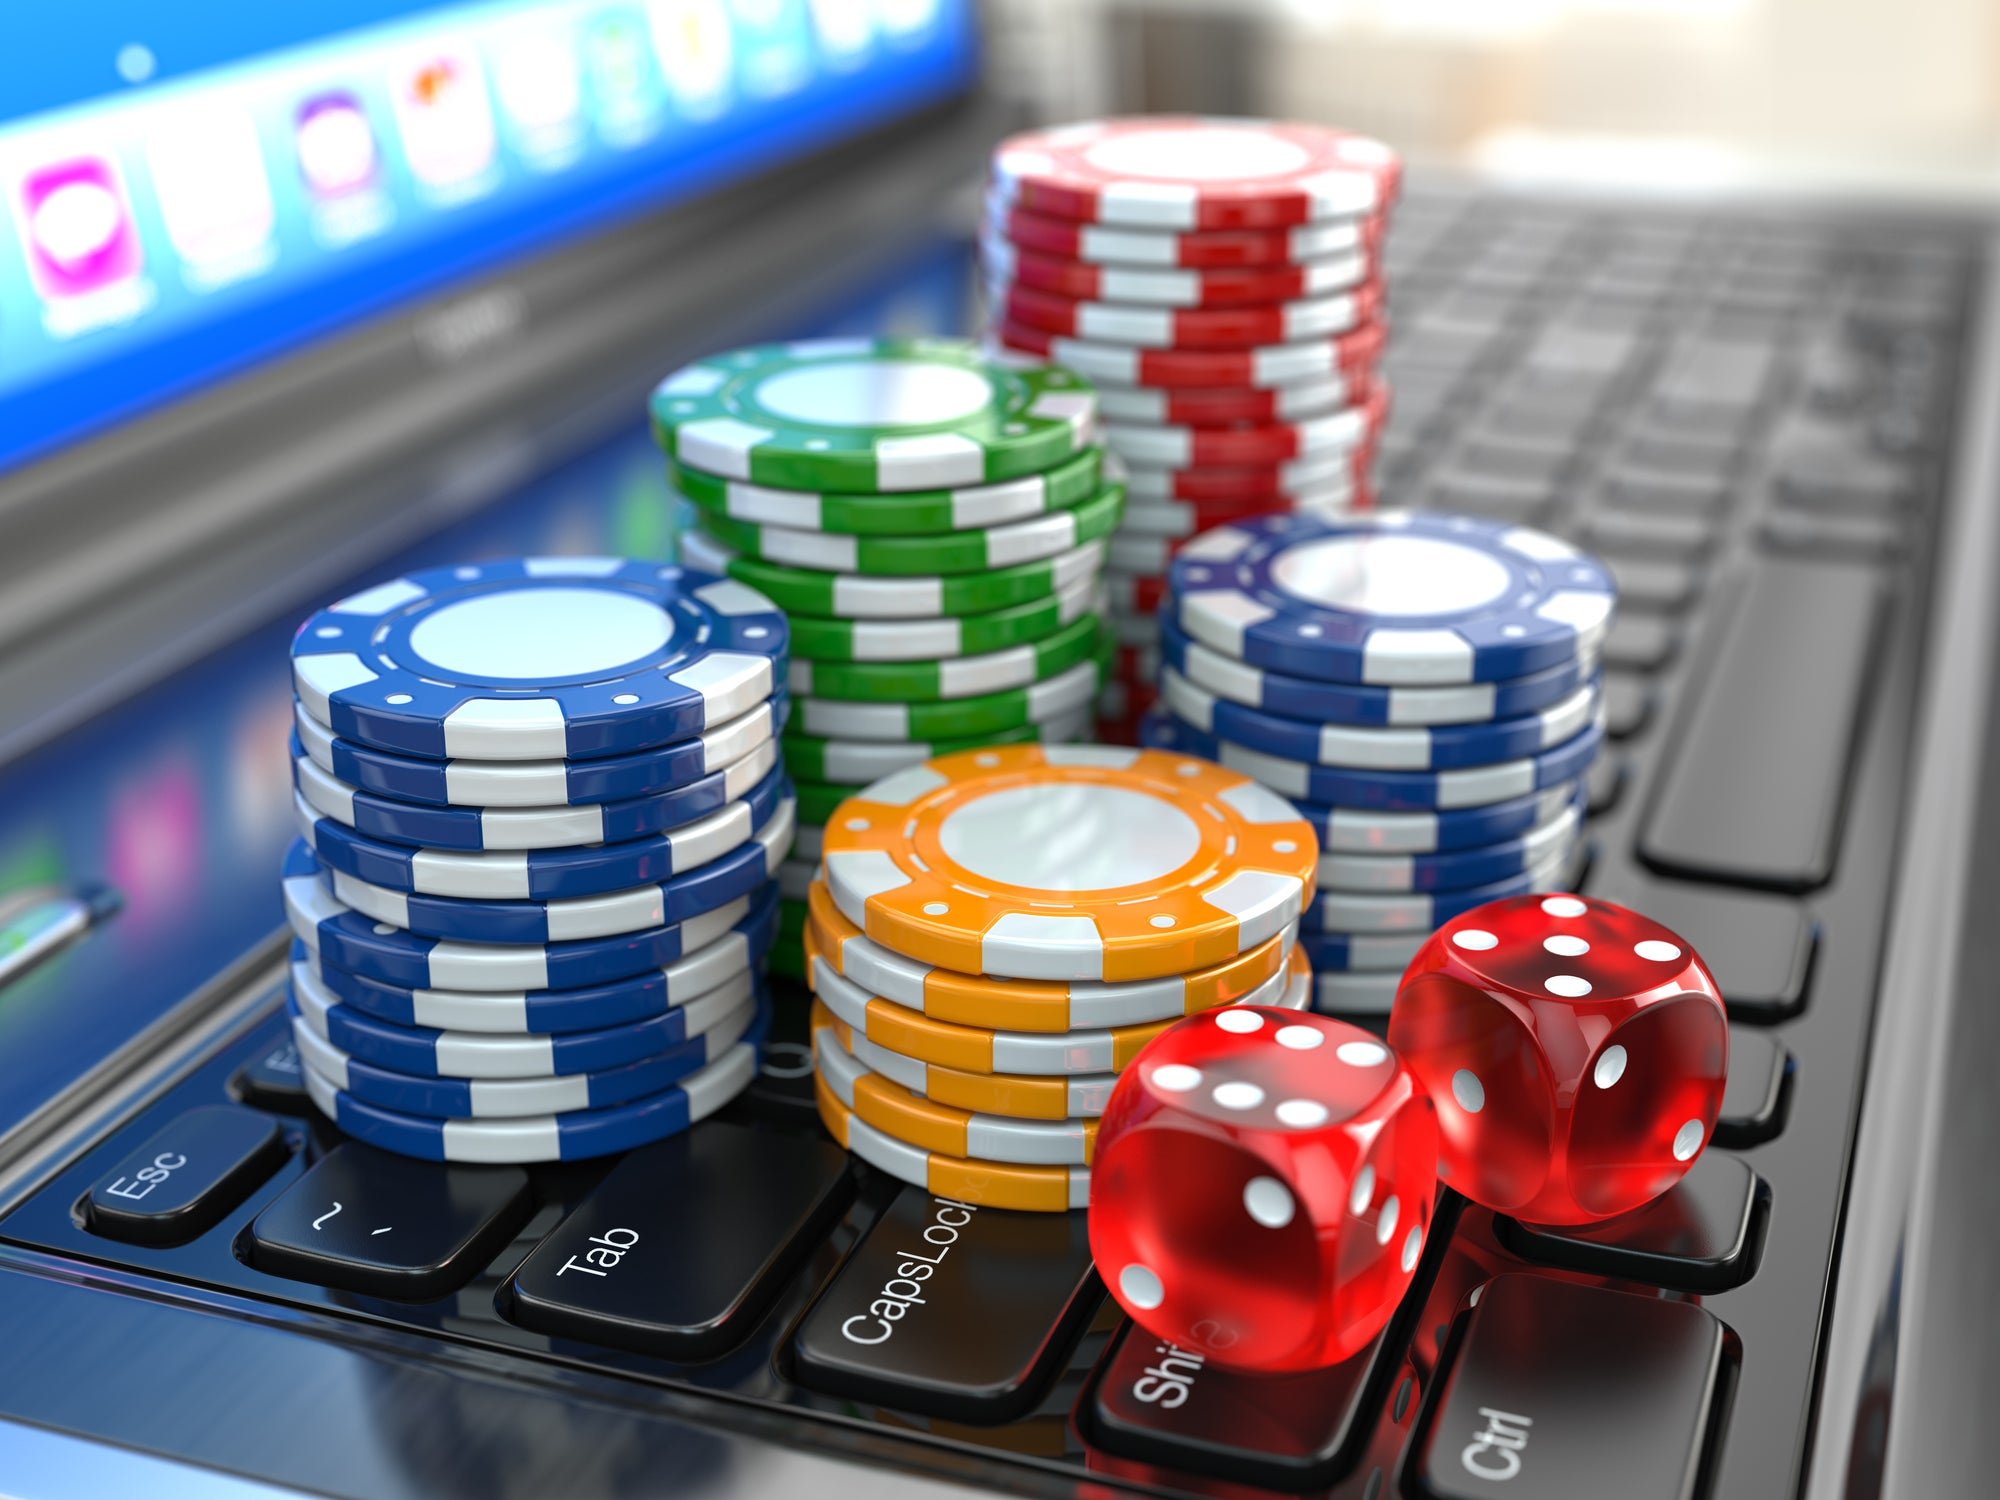 Why consume the services of an online casino?